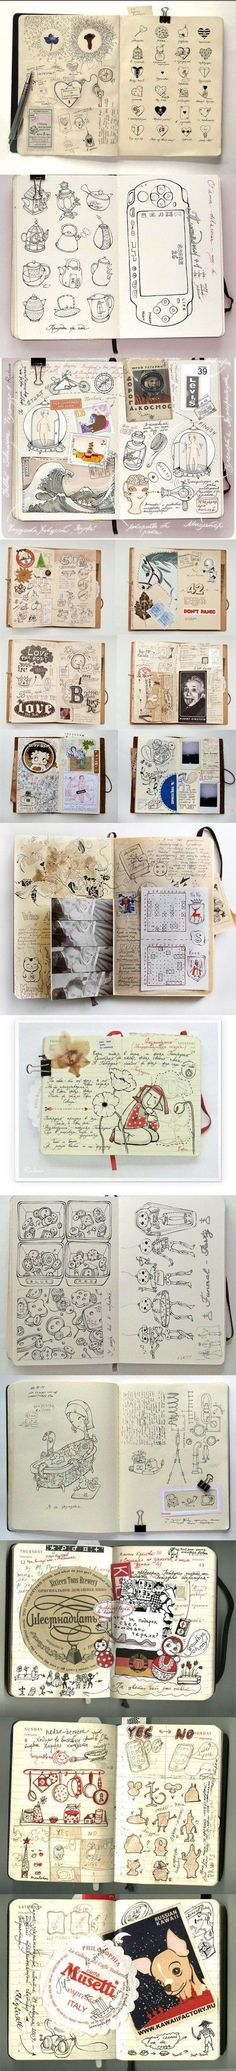 Journal drawings in moleskine